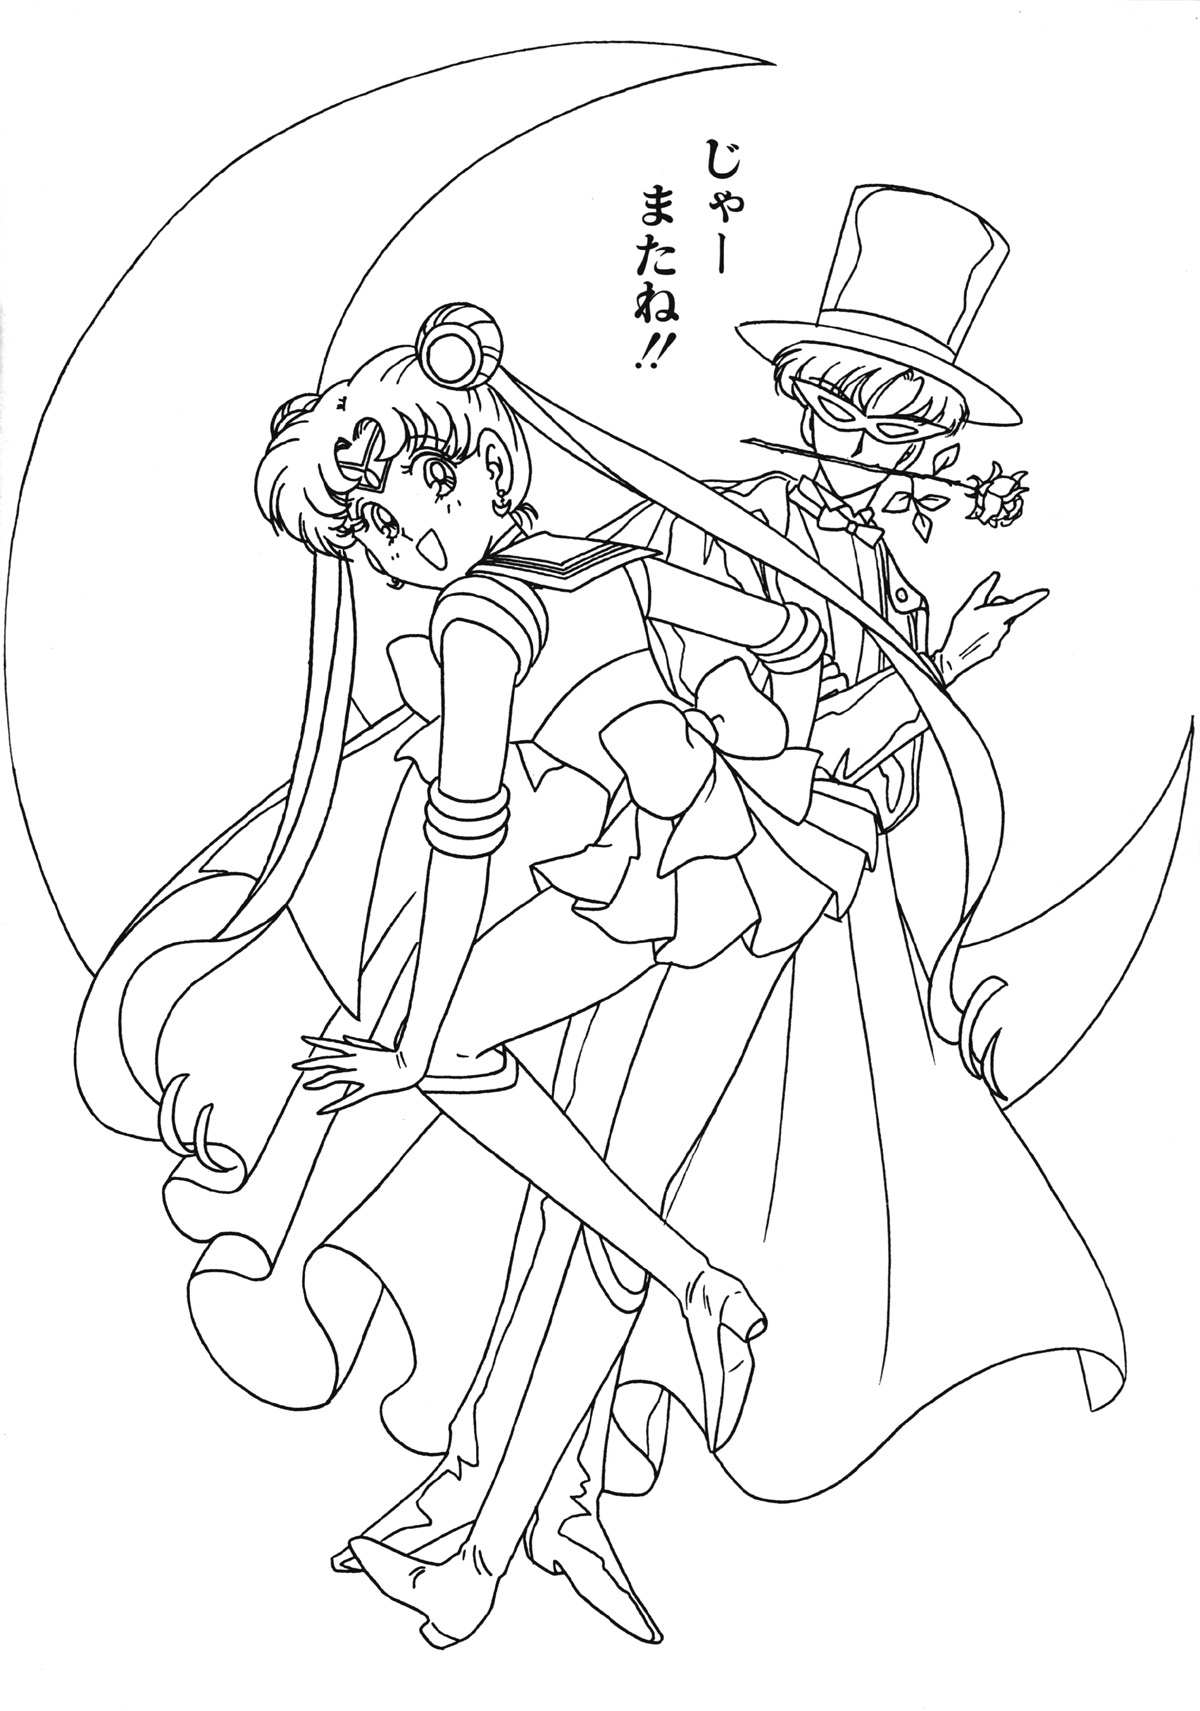 Sailormoon Coloring Pages At Getdrawings Com Free For Personal Use